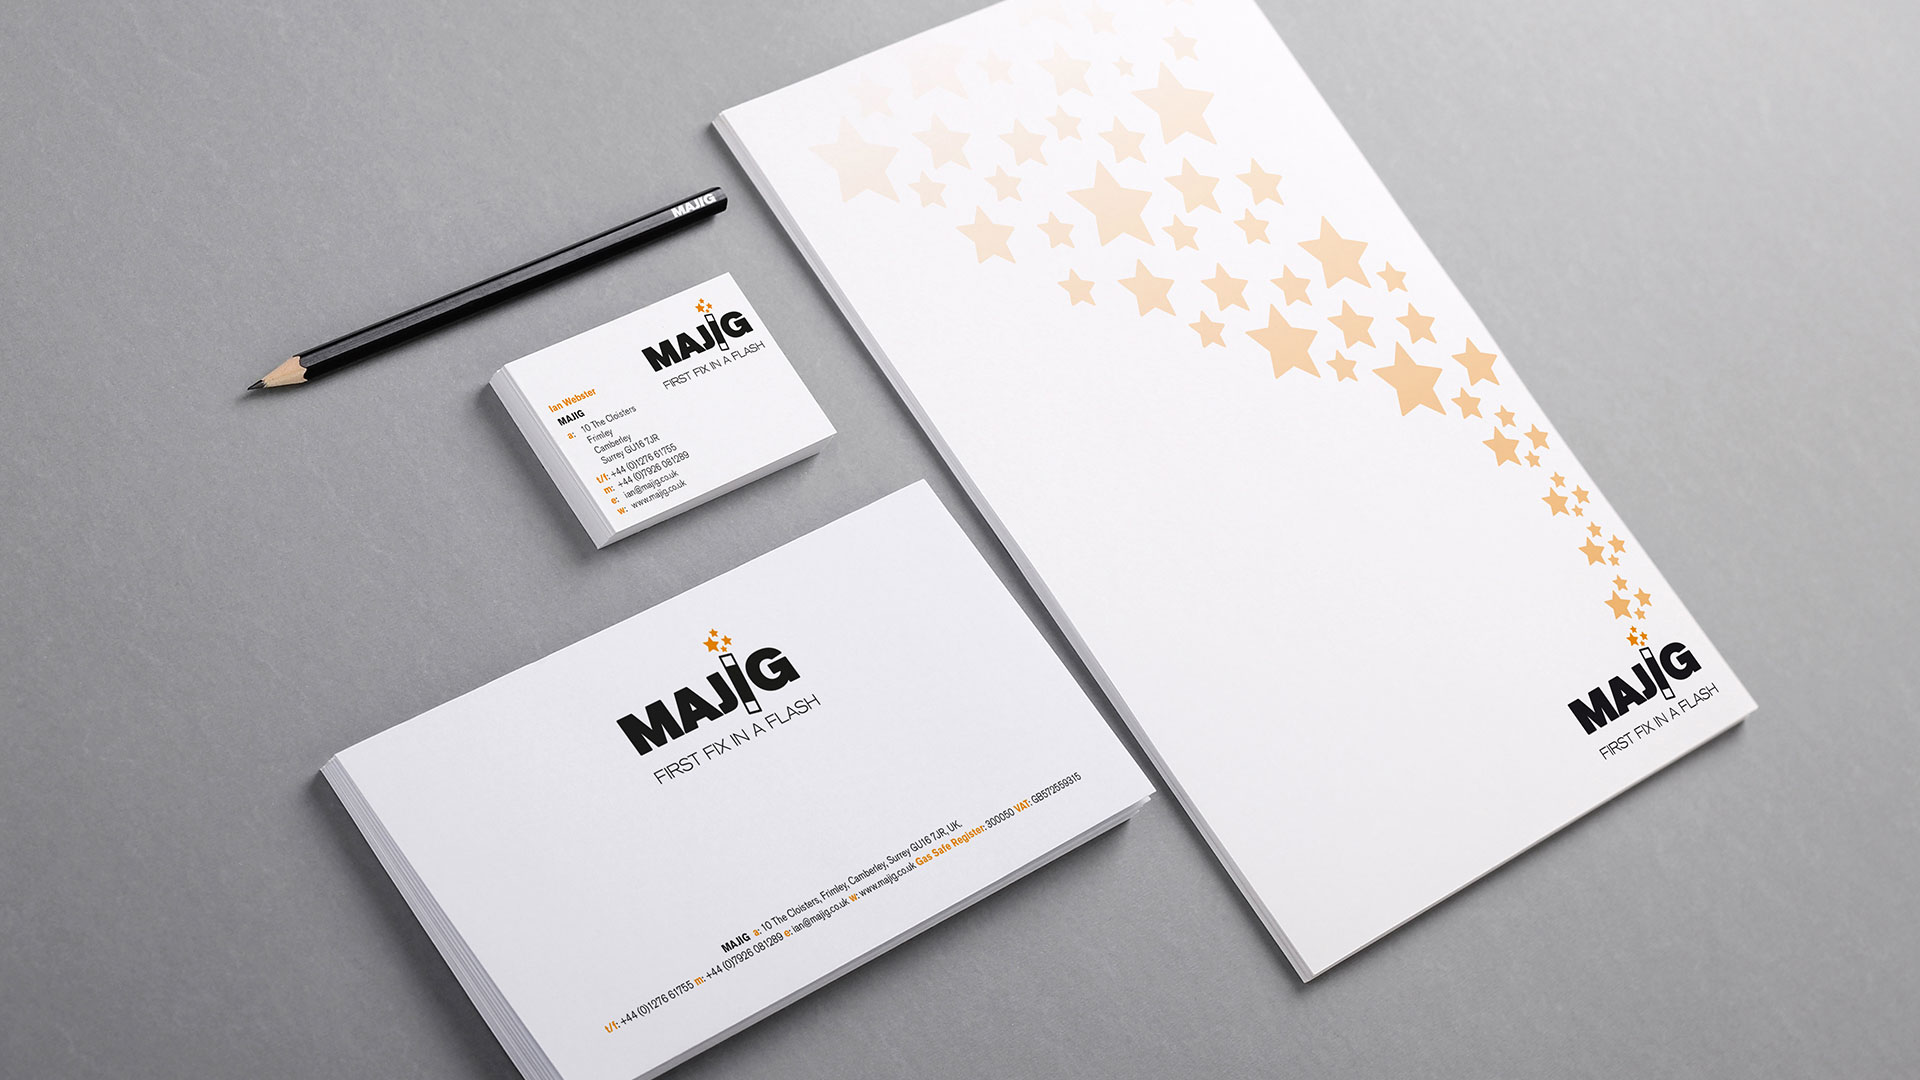 Majig_Stationary